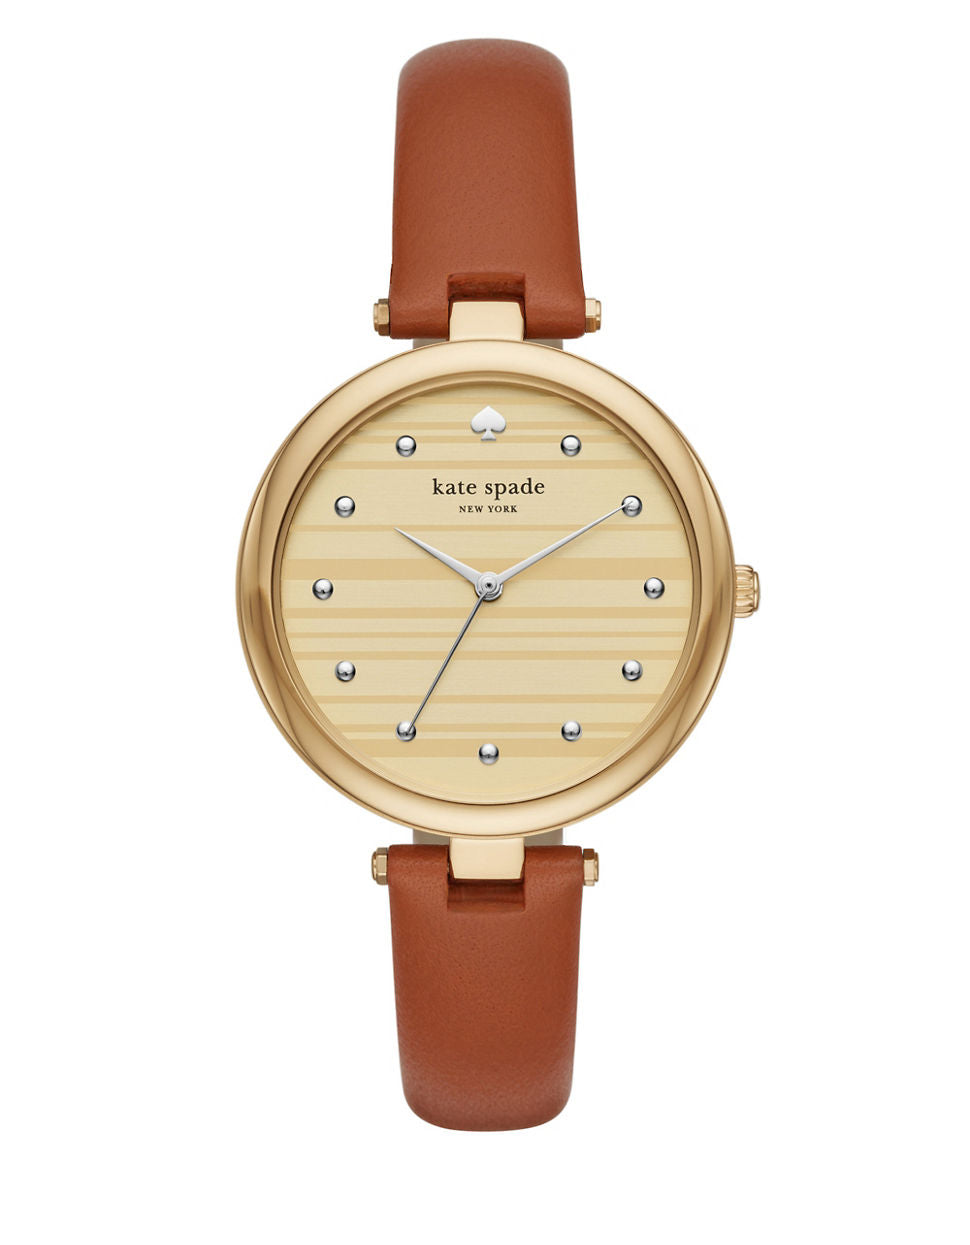 KATE SPADE NEW YORK Goldtone Leather Varick Watch